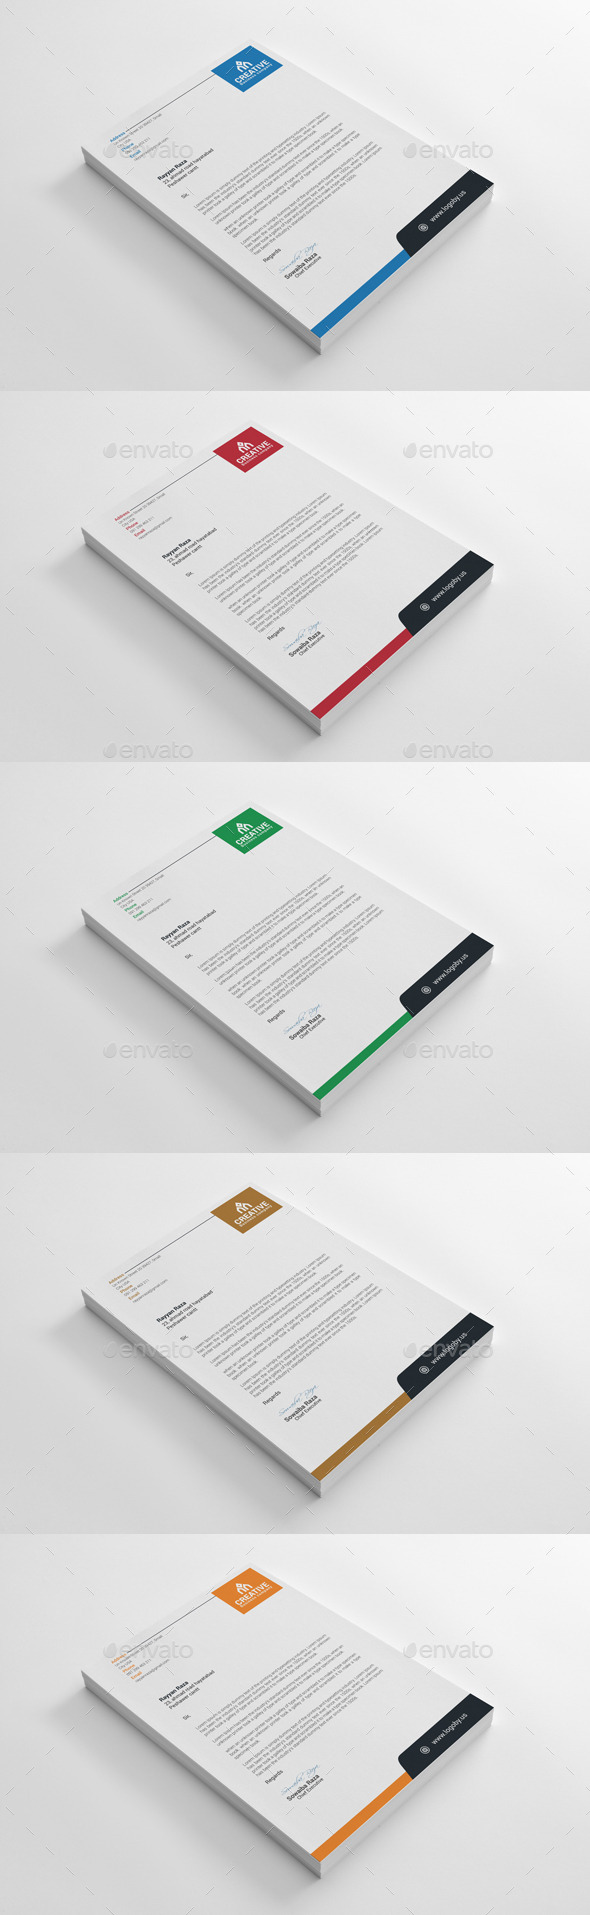 12 free letterhead templates in psd ms word and pdf format letterhead template altavistaventures Image collections